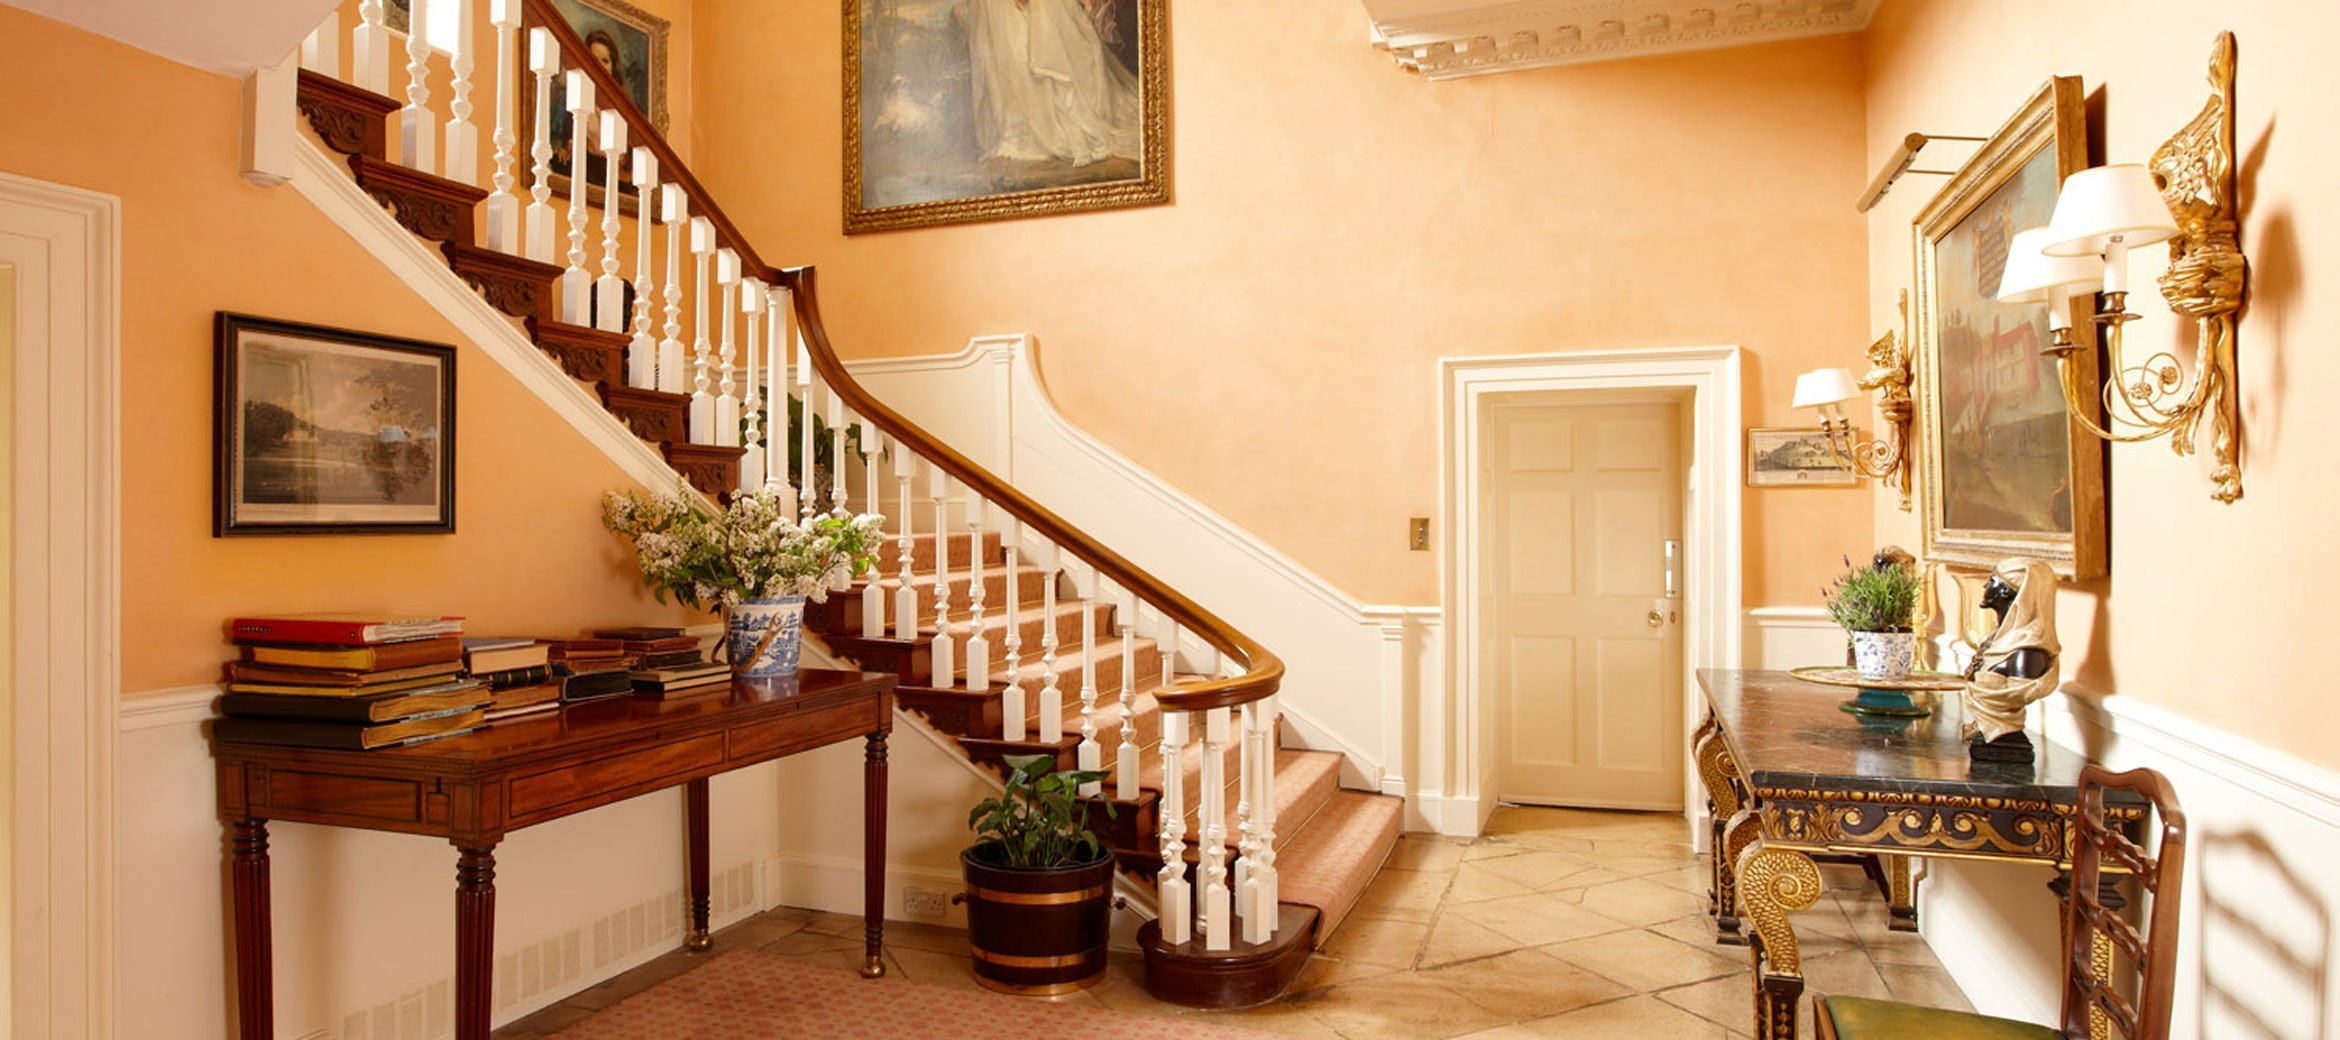 cornwell-manor-staircase